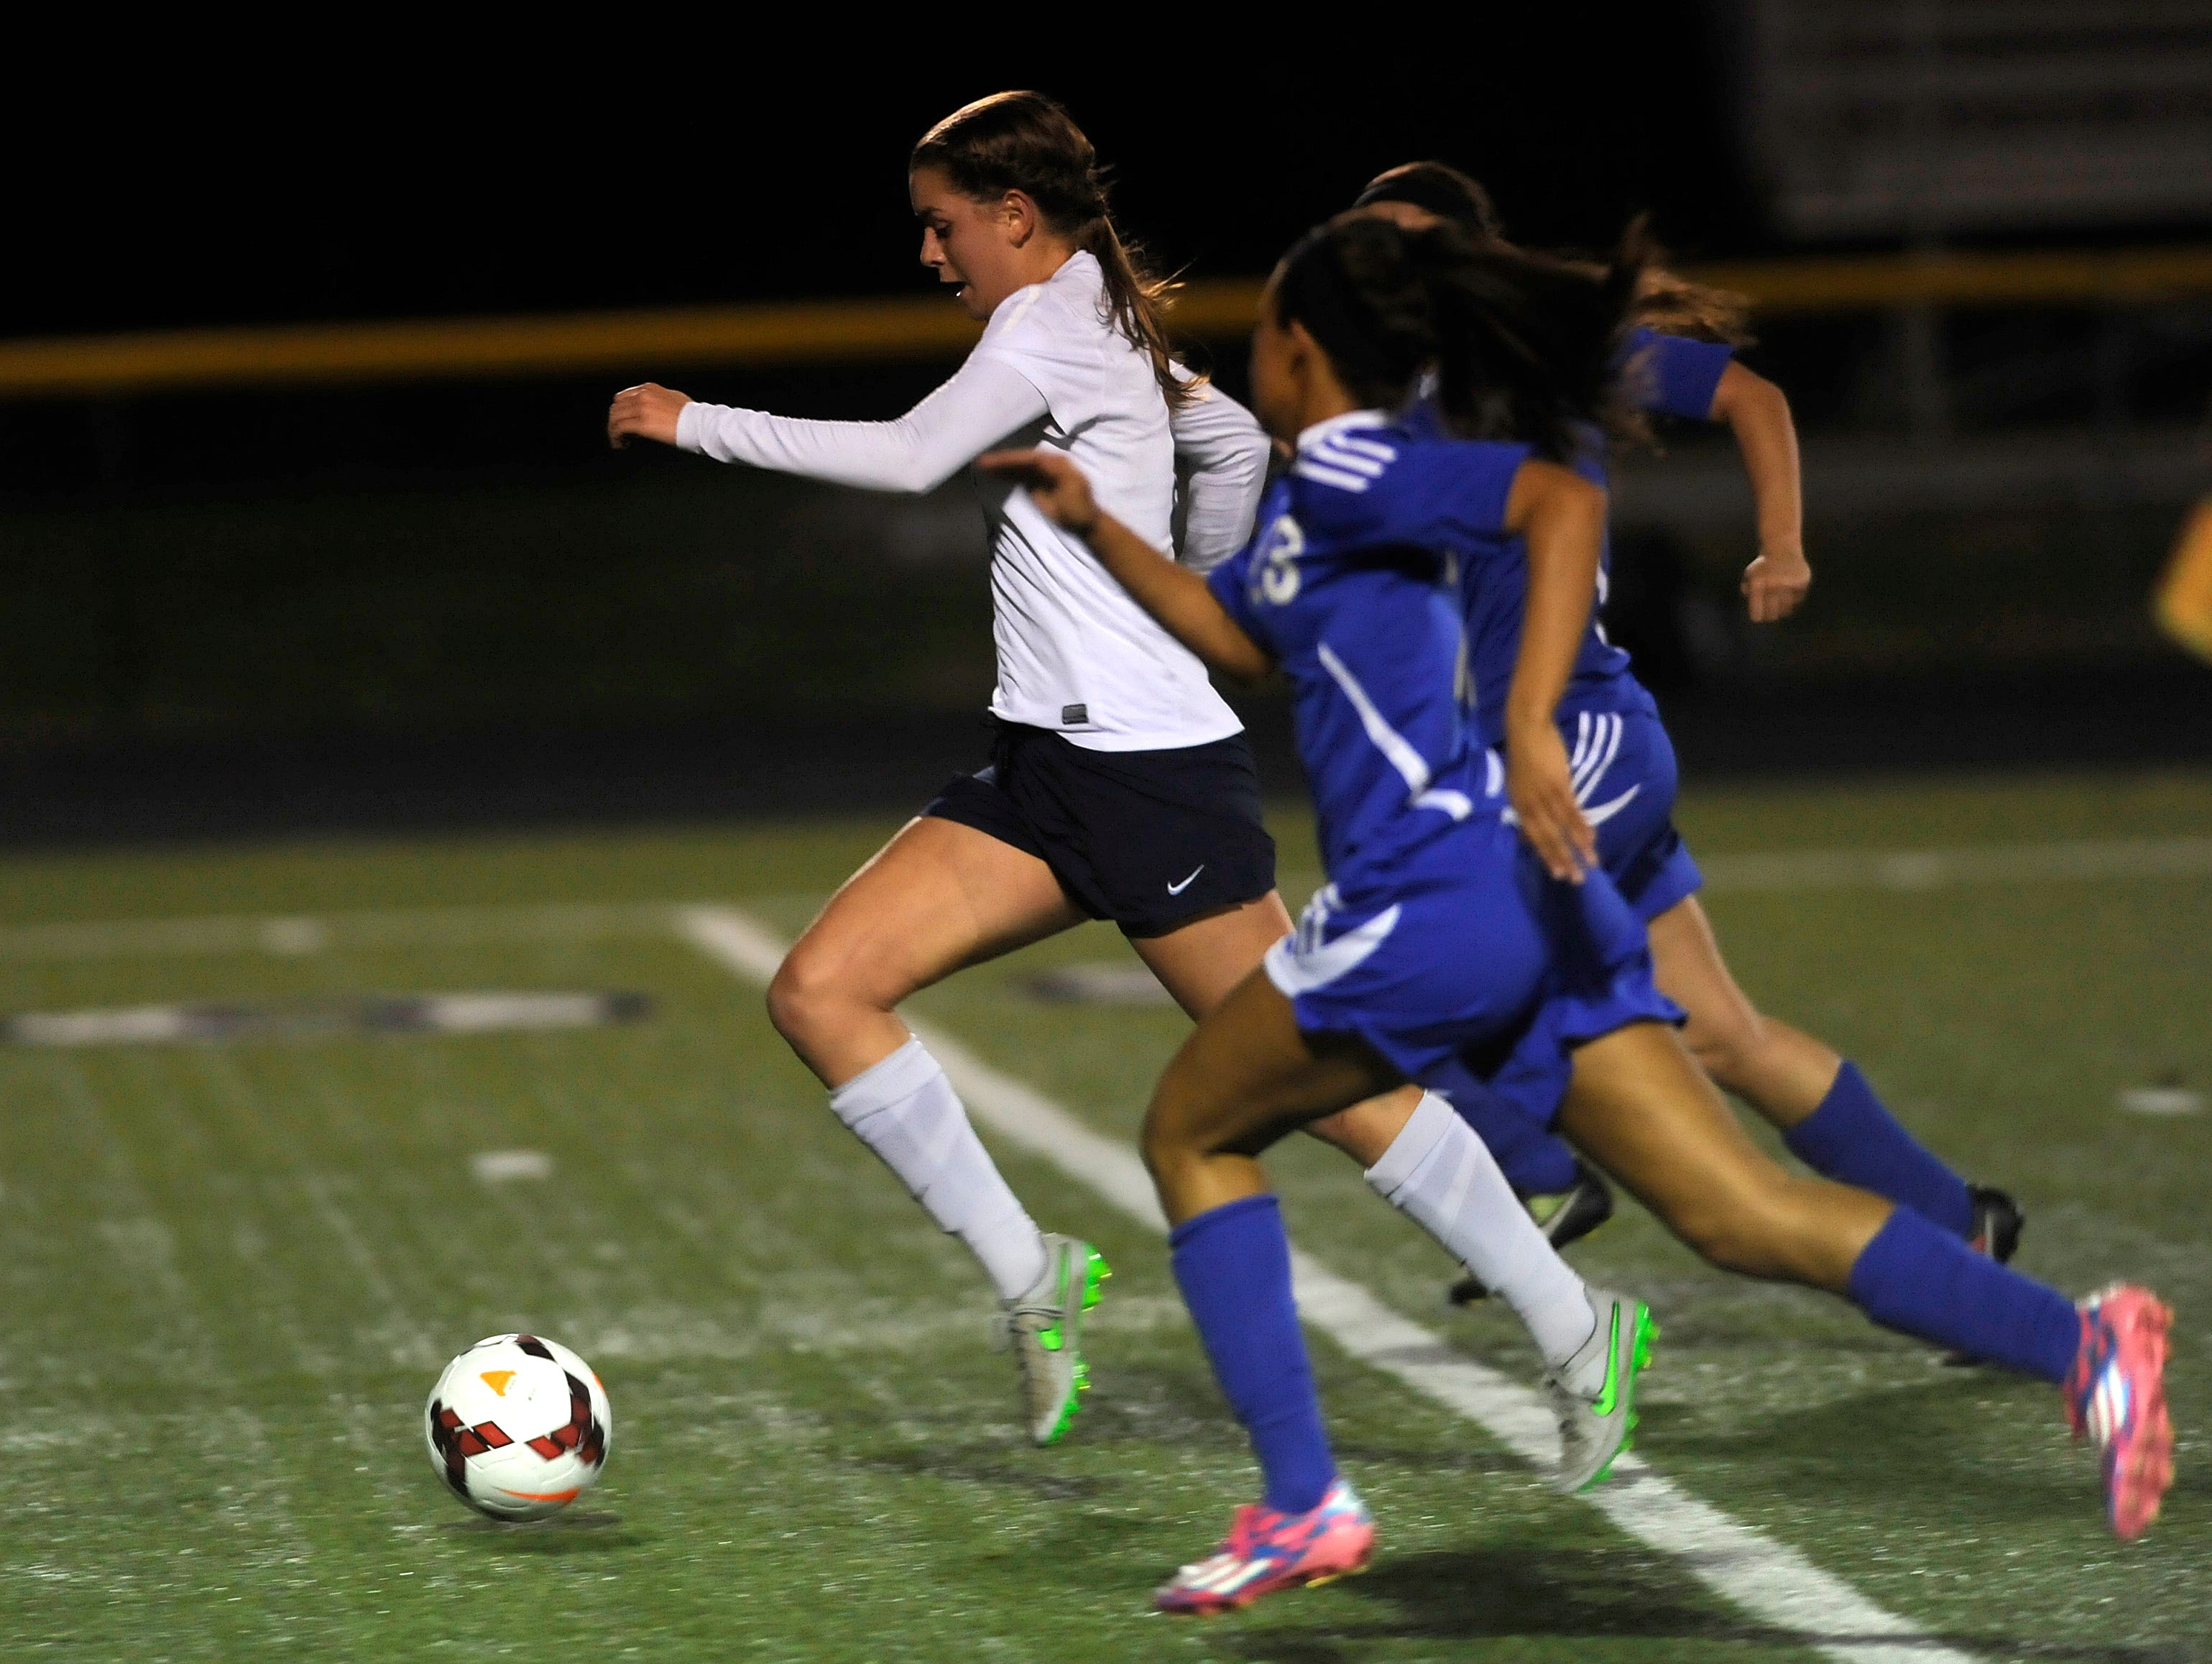 Granville's Rose Sawyers breaks away from Chillicothe defenders to score her third goal during Tuesday night's Division II regional semifinal game at Bloom-Carroll. The Blue Aces defeated Chillicothe 8-0.